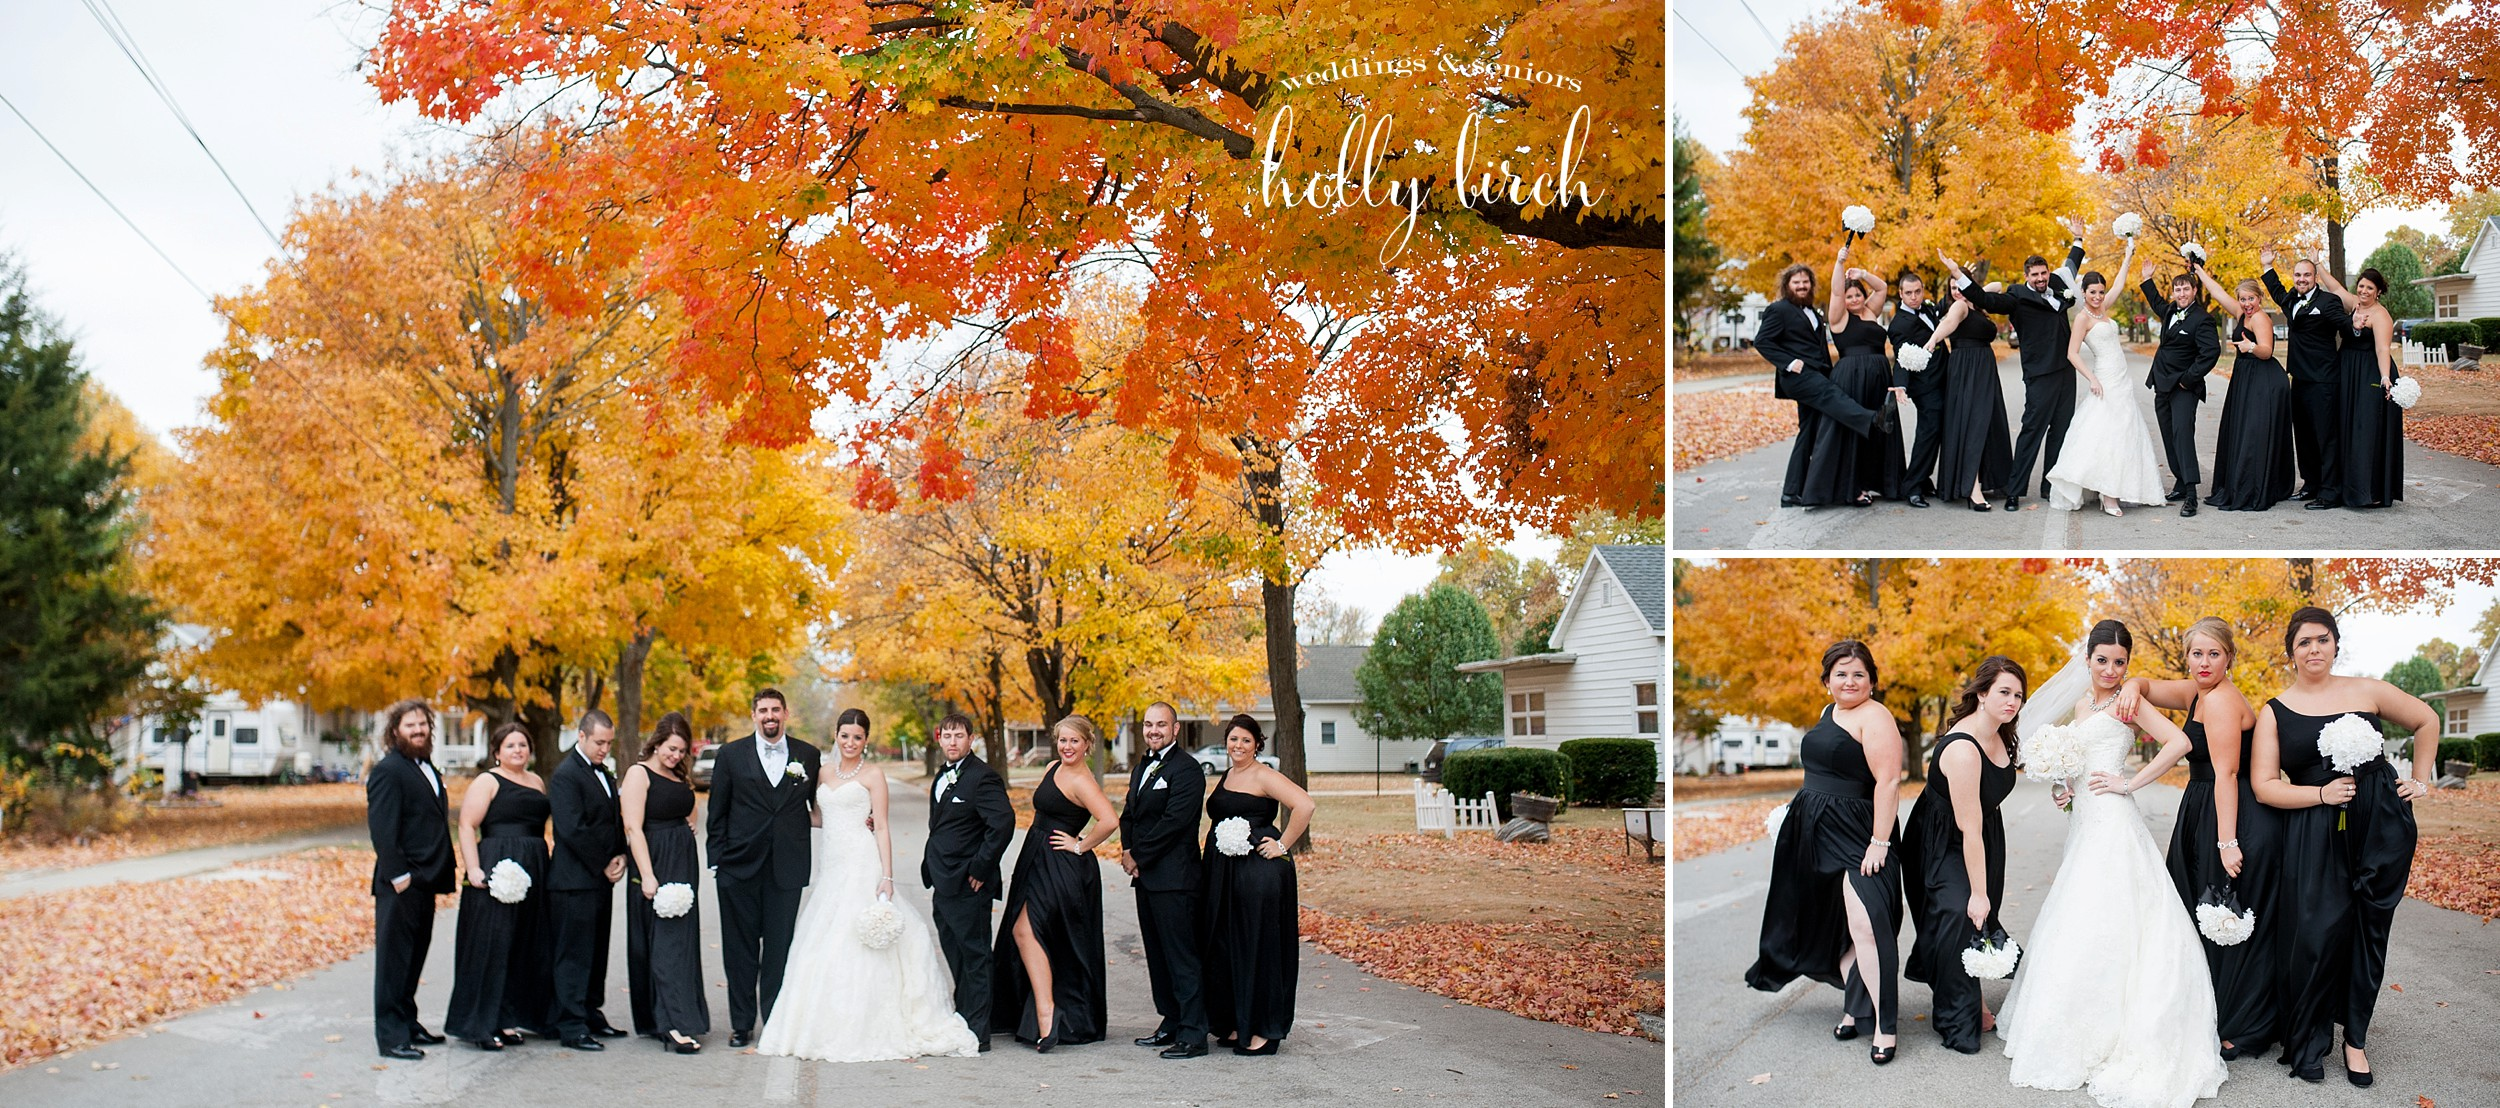 fun fall autumn wedding pics